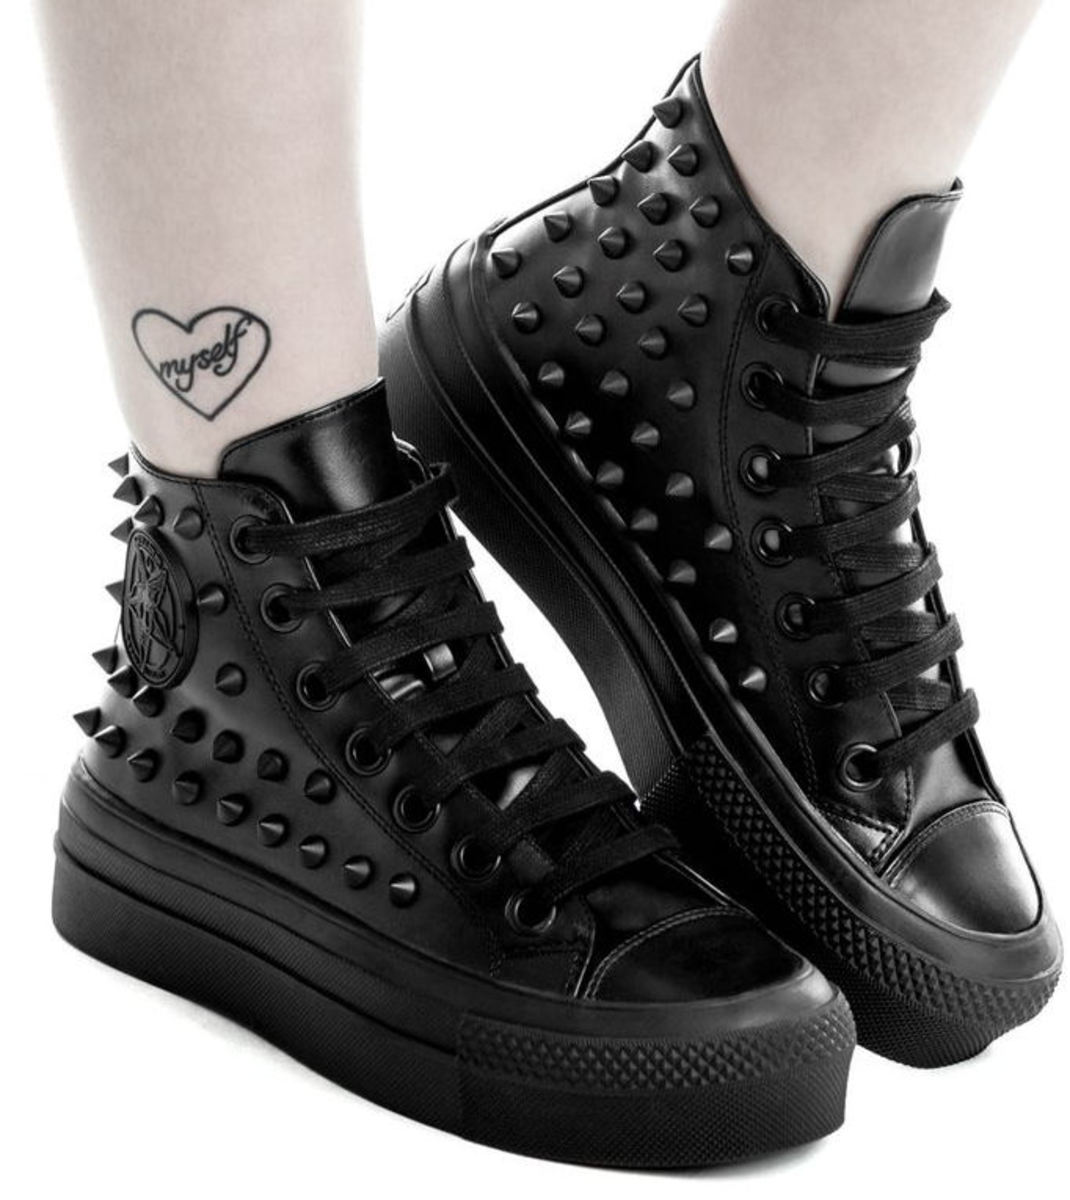 boty s klínem unisex - SOULED OUT HIGH TOPS - KILLSTAR - K-FTW-F-2690 36